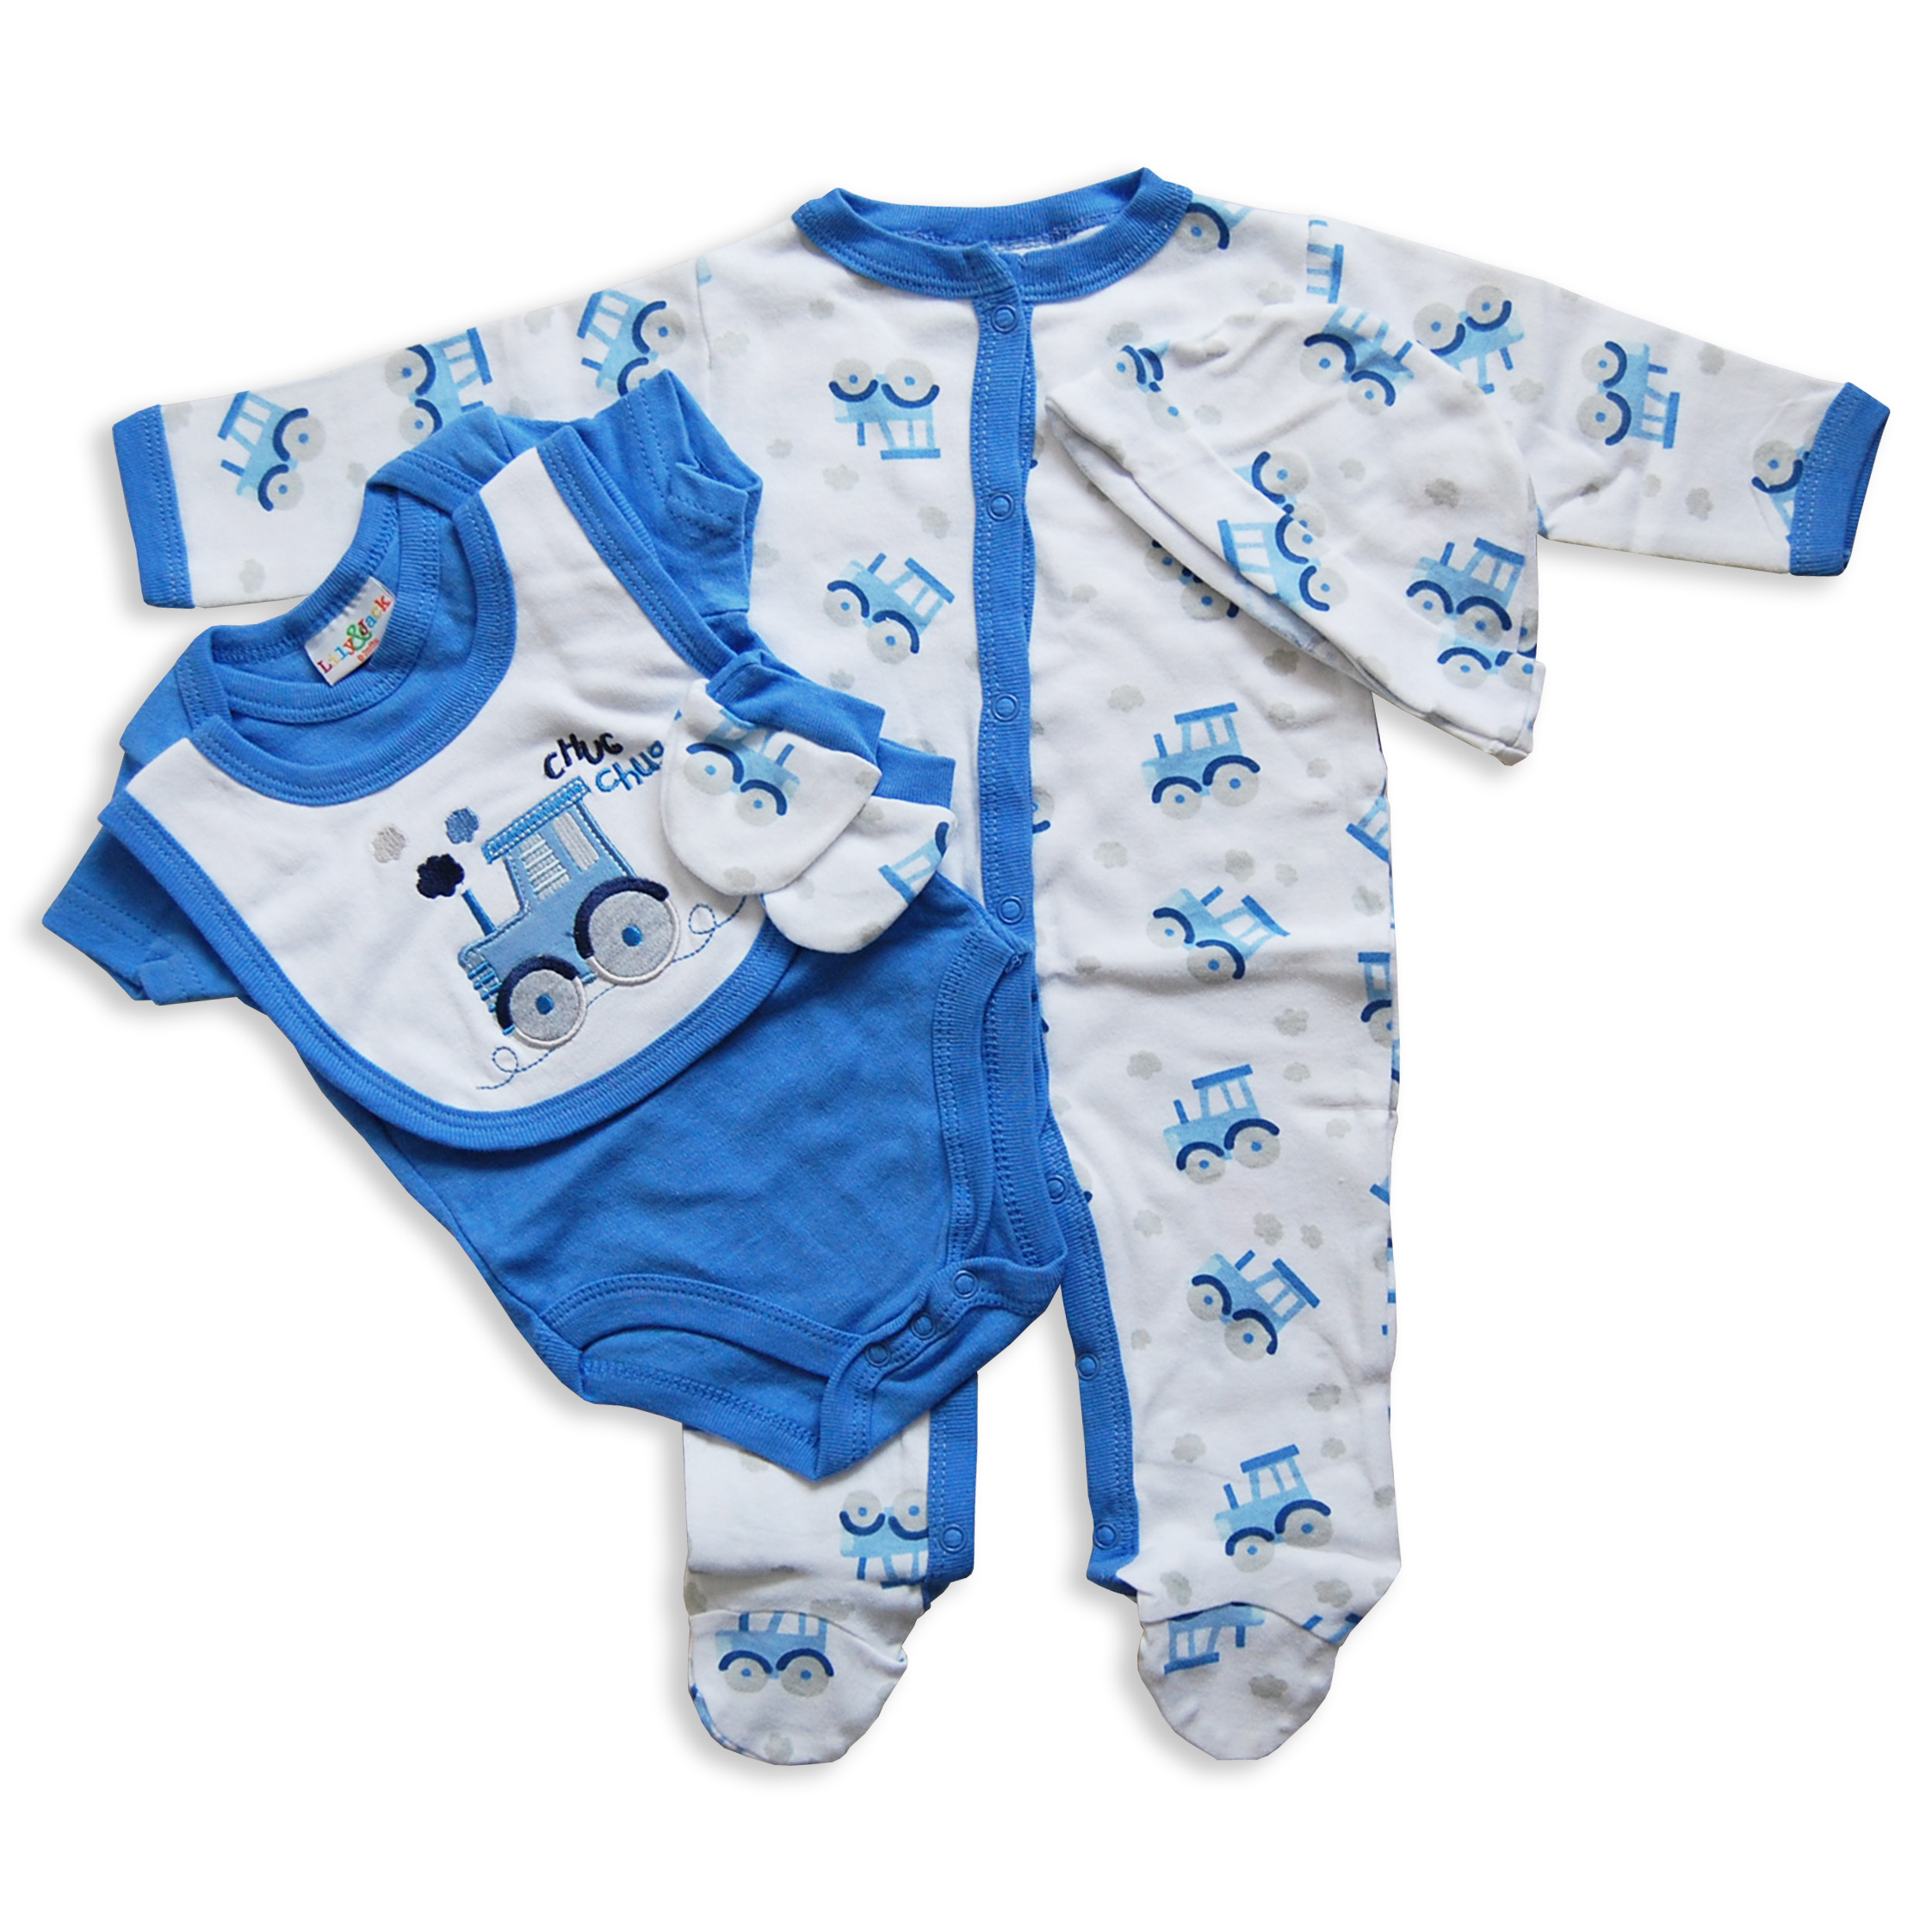 5pc Unisex Layette Boxed Gift Sets Boys Girls Bear Rabbit ...